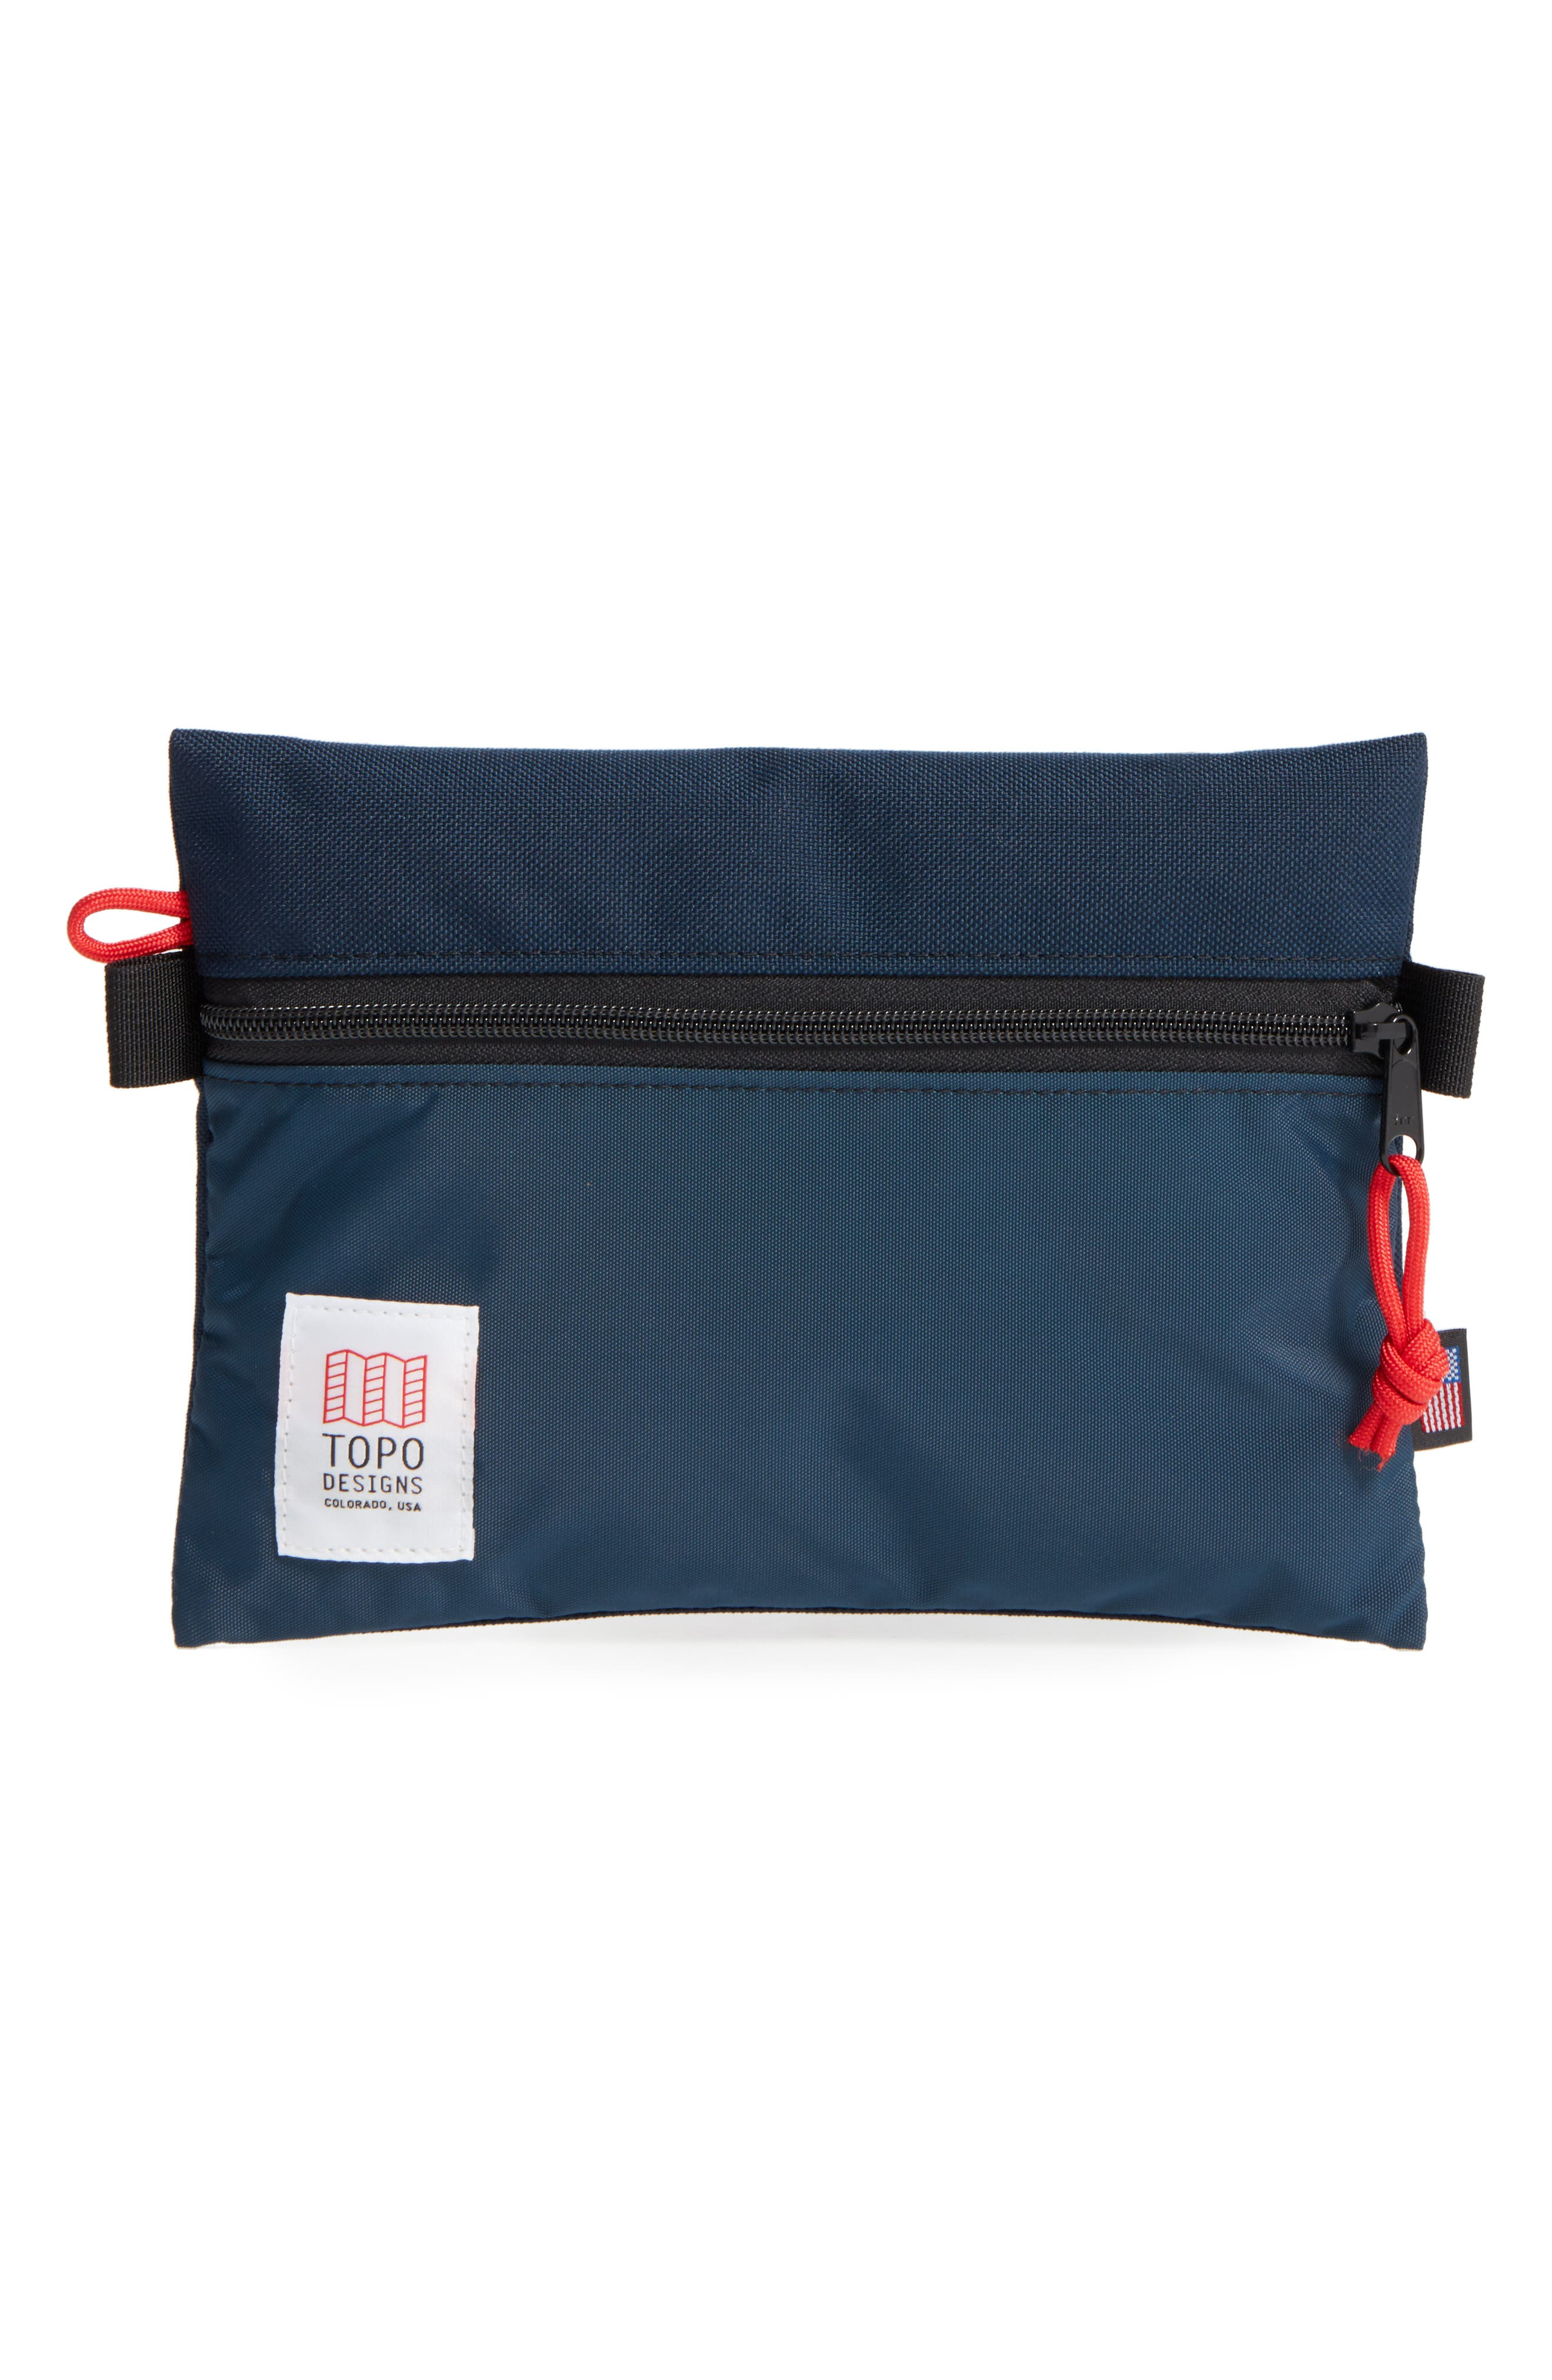 TOPO DESIGNS Topo Designs Accessory Bag